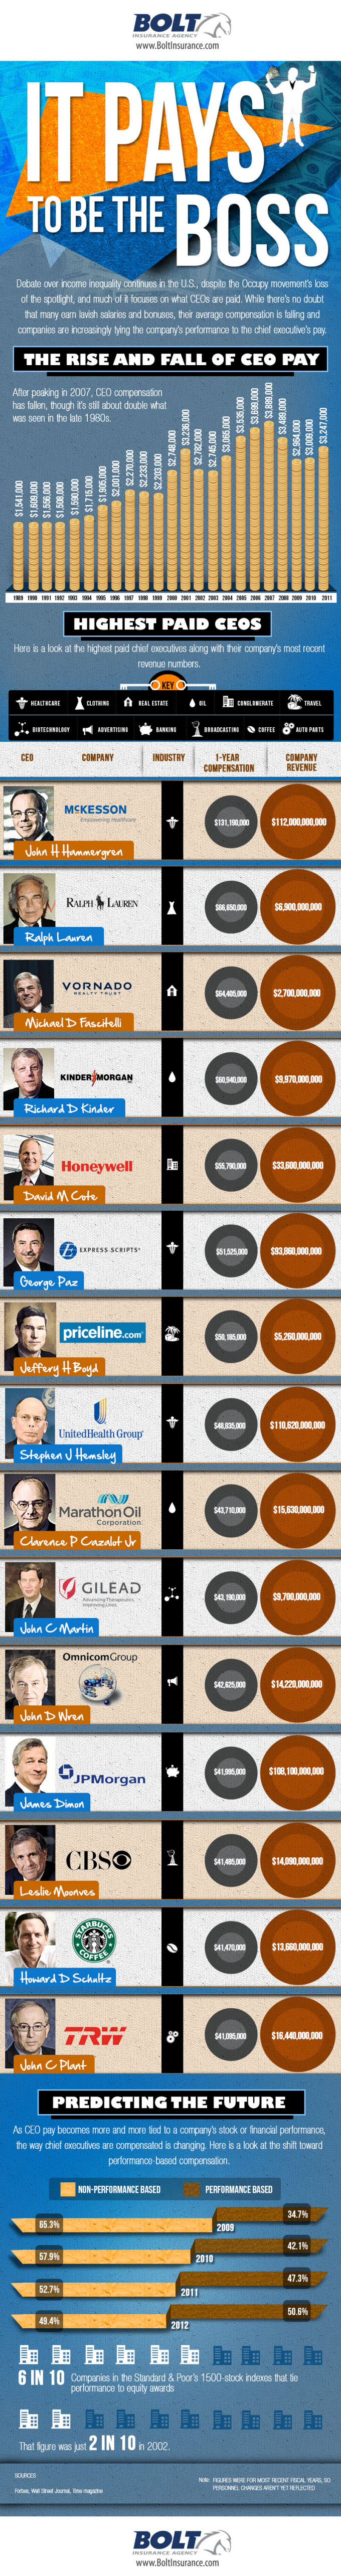 ceo-pay-infographic